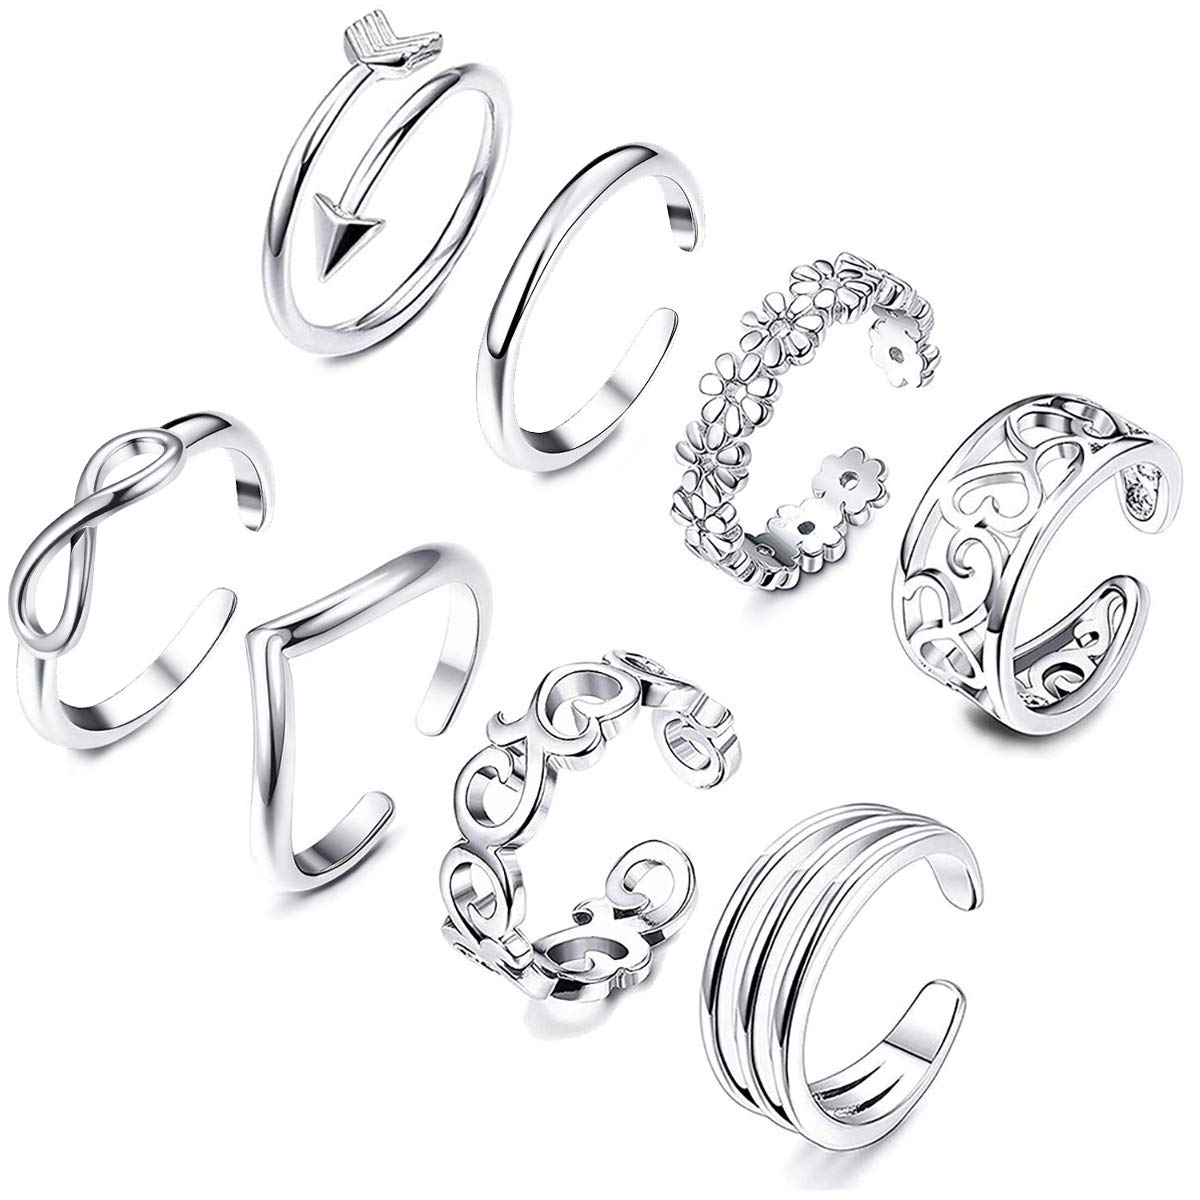 KOHOTA 8PCS Open Toe Rings Set for Women Hypoallergenic Adjustable Flower Knot Simple Arrow Fingers Joint Tail Ring Band Sandals Foot Jewelry